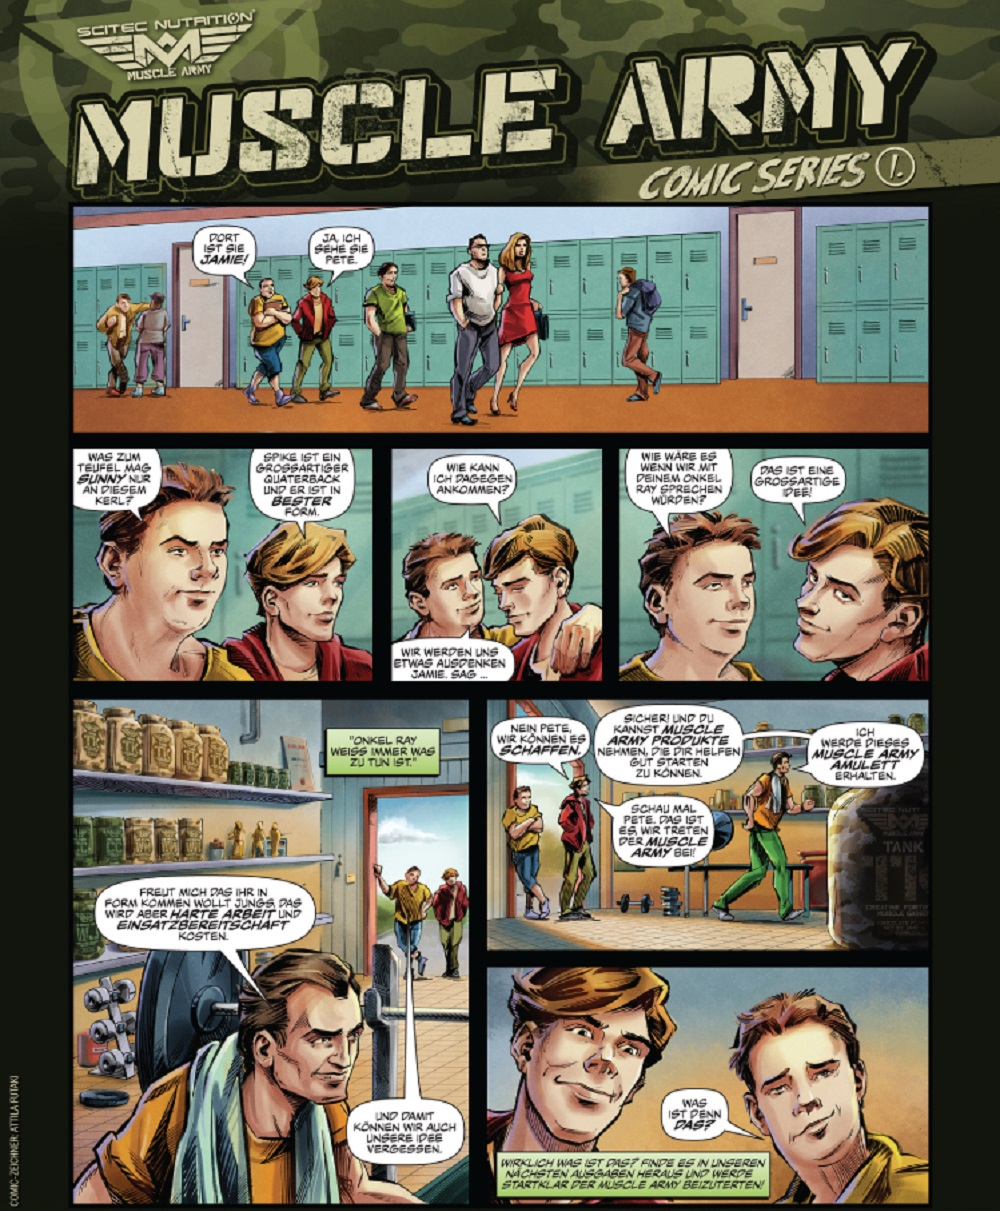 Scitec Nutrition Comic bzw Muscle Army Comic Series